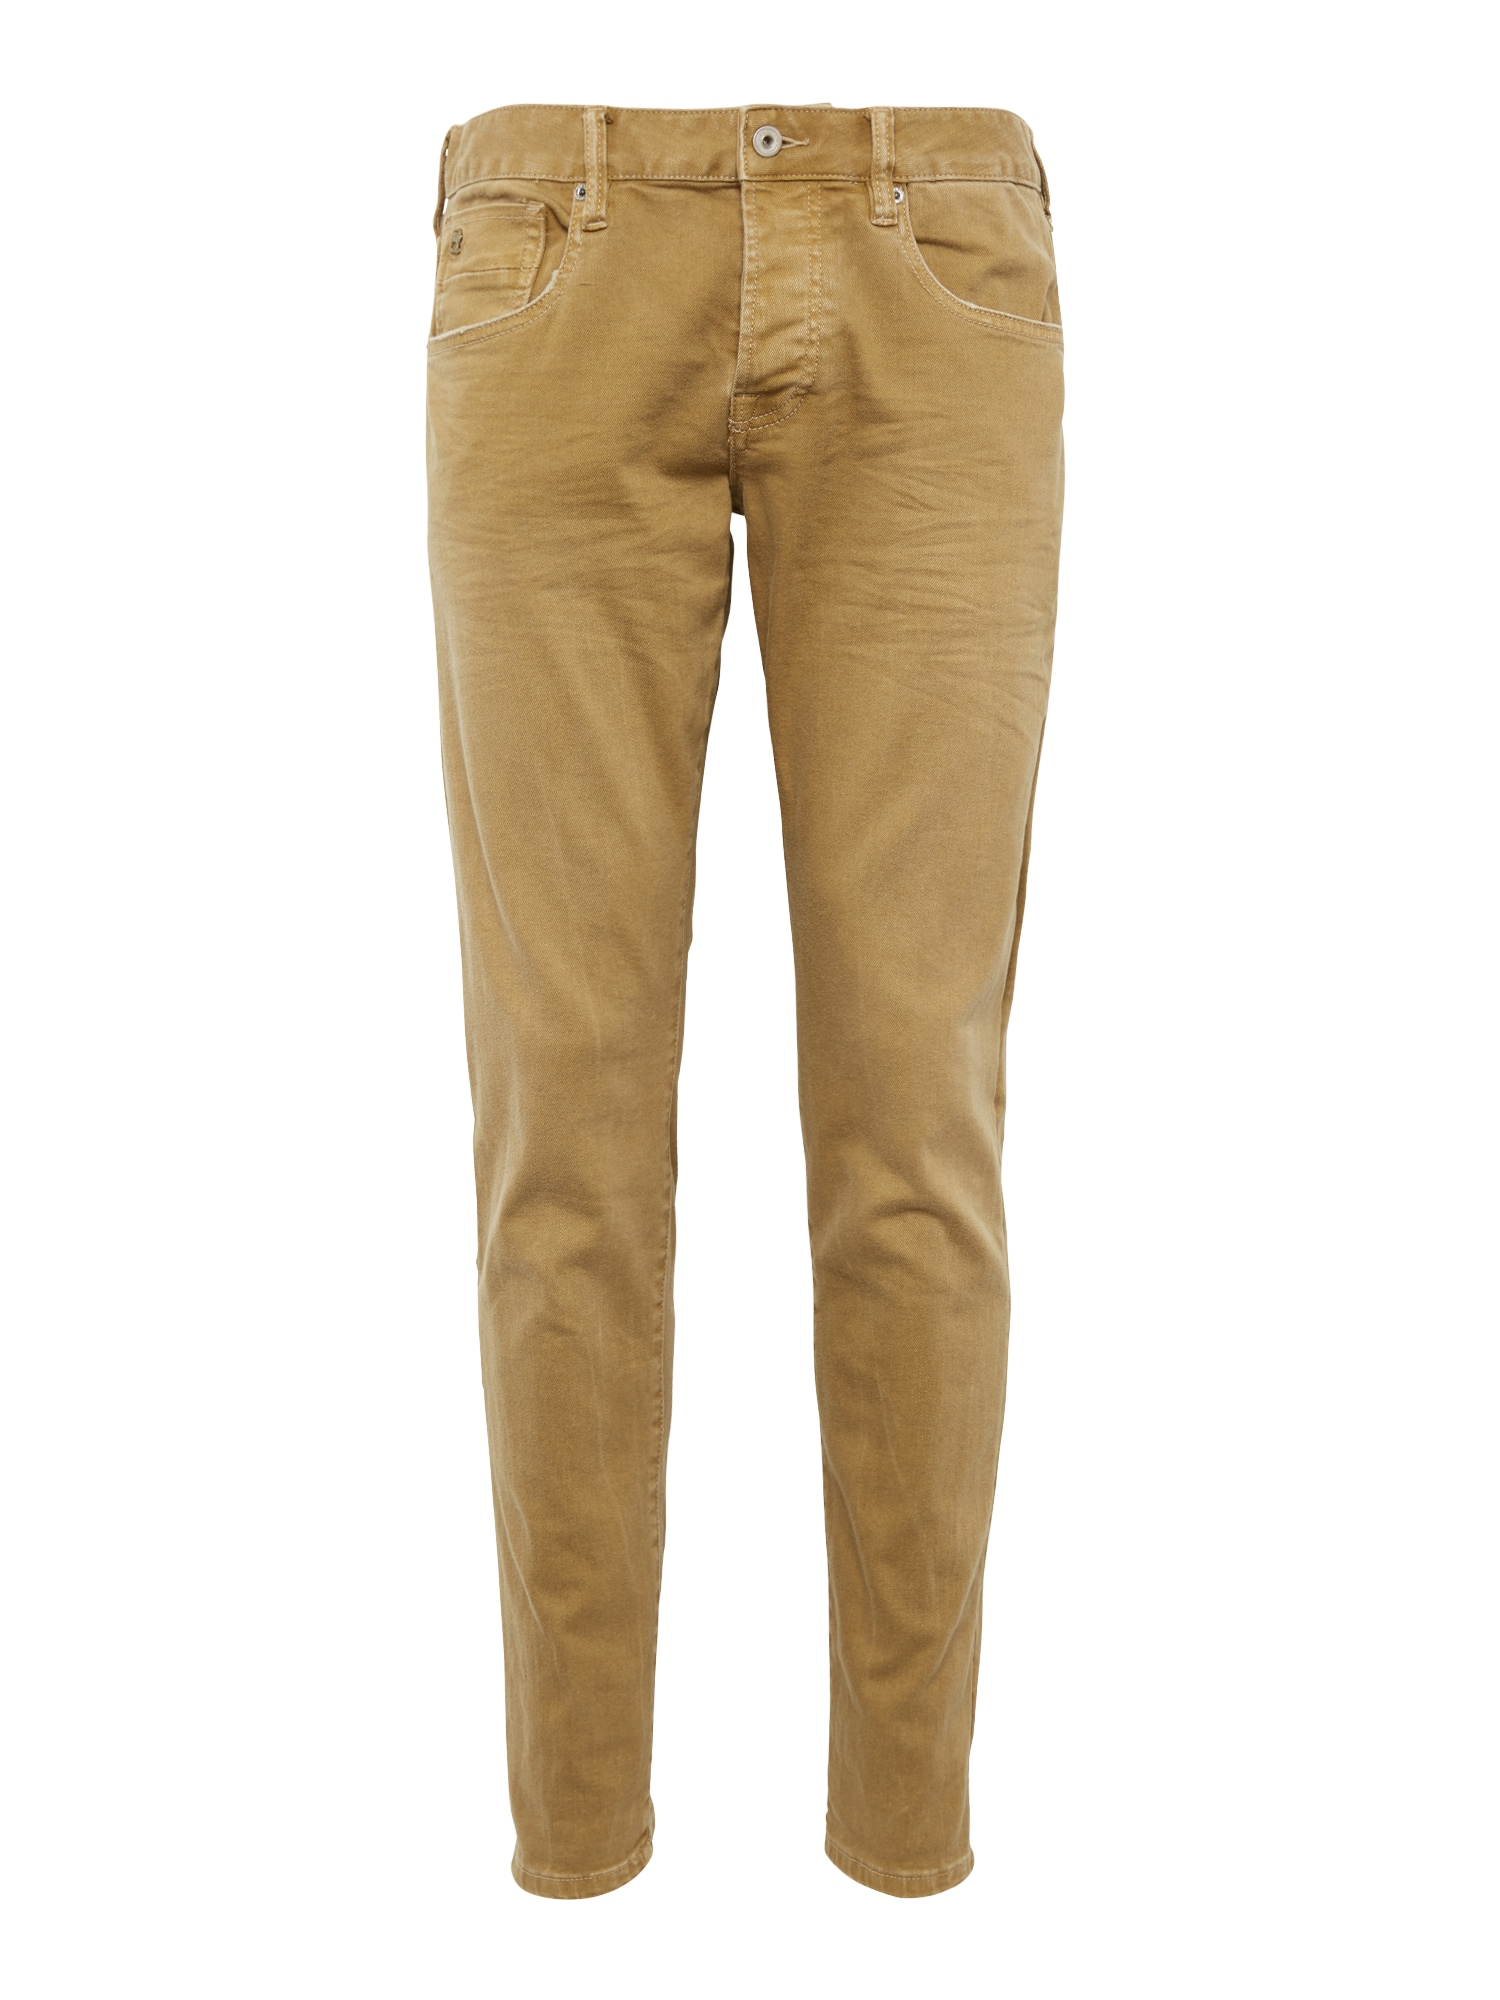 SCOTCH  and  SODA Heren Jeans Ralston Garment Dye beige